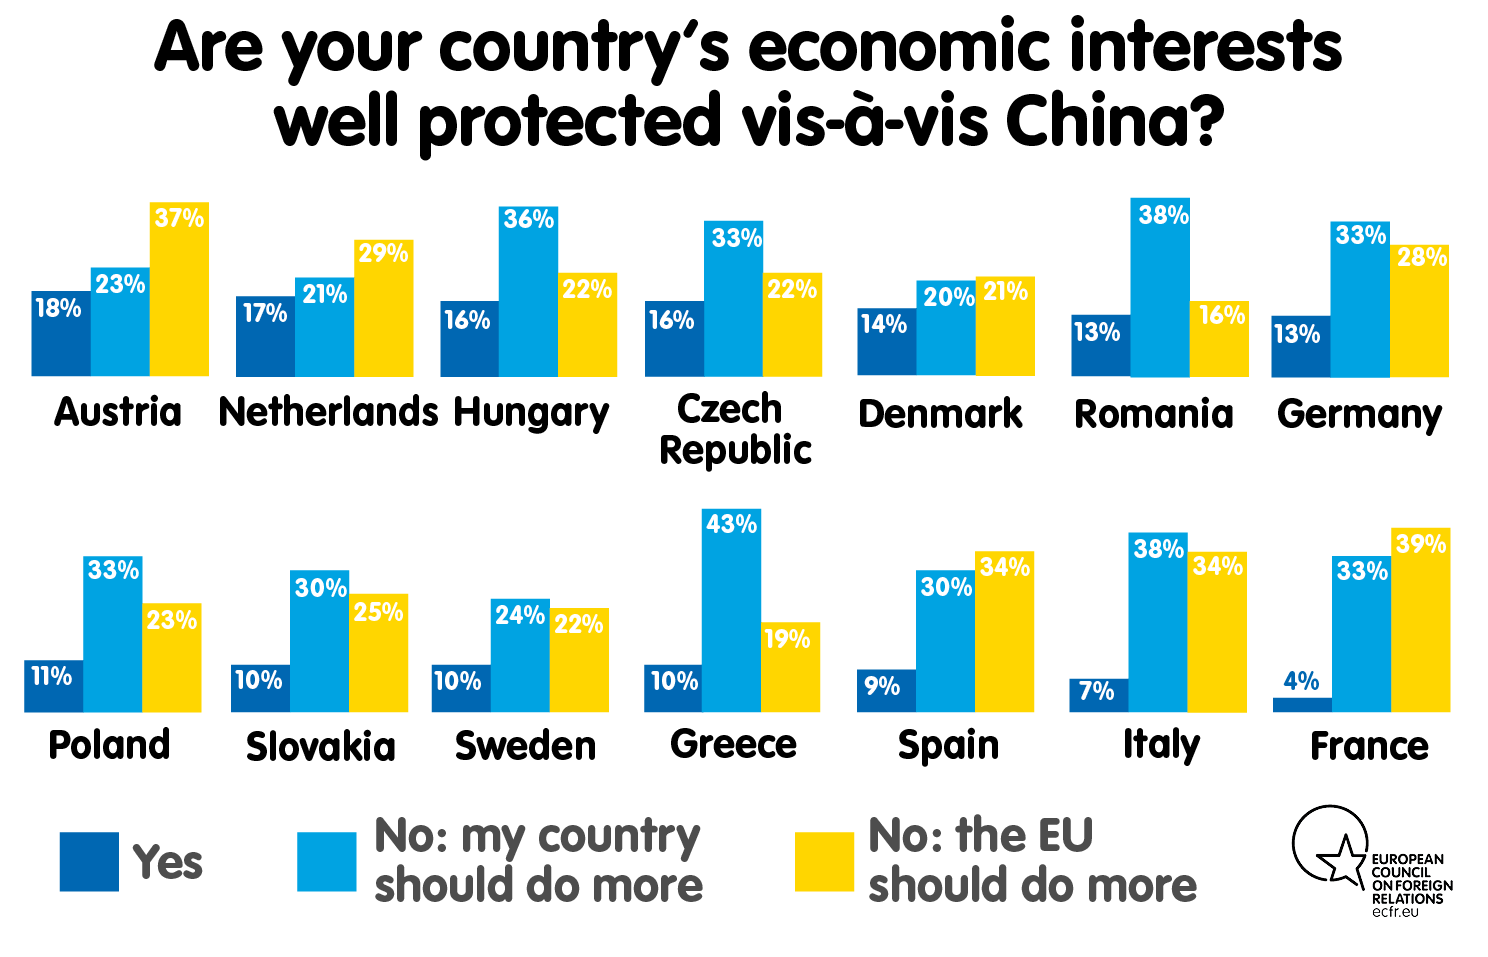 Are your country's economic interests well protected vis-à-vis China?